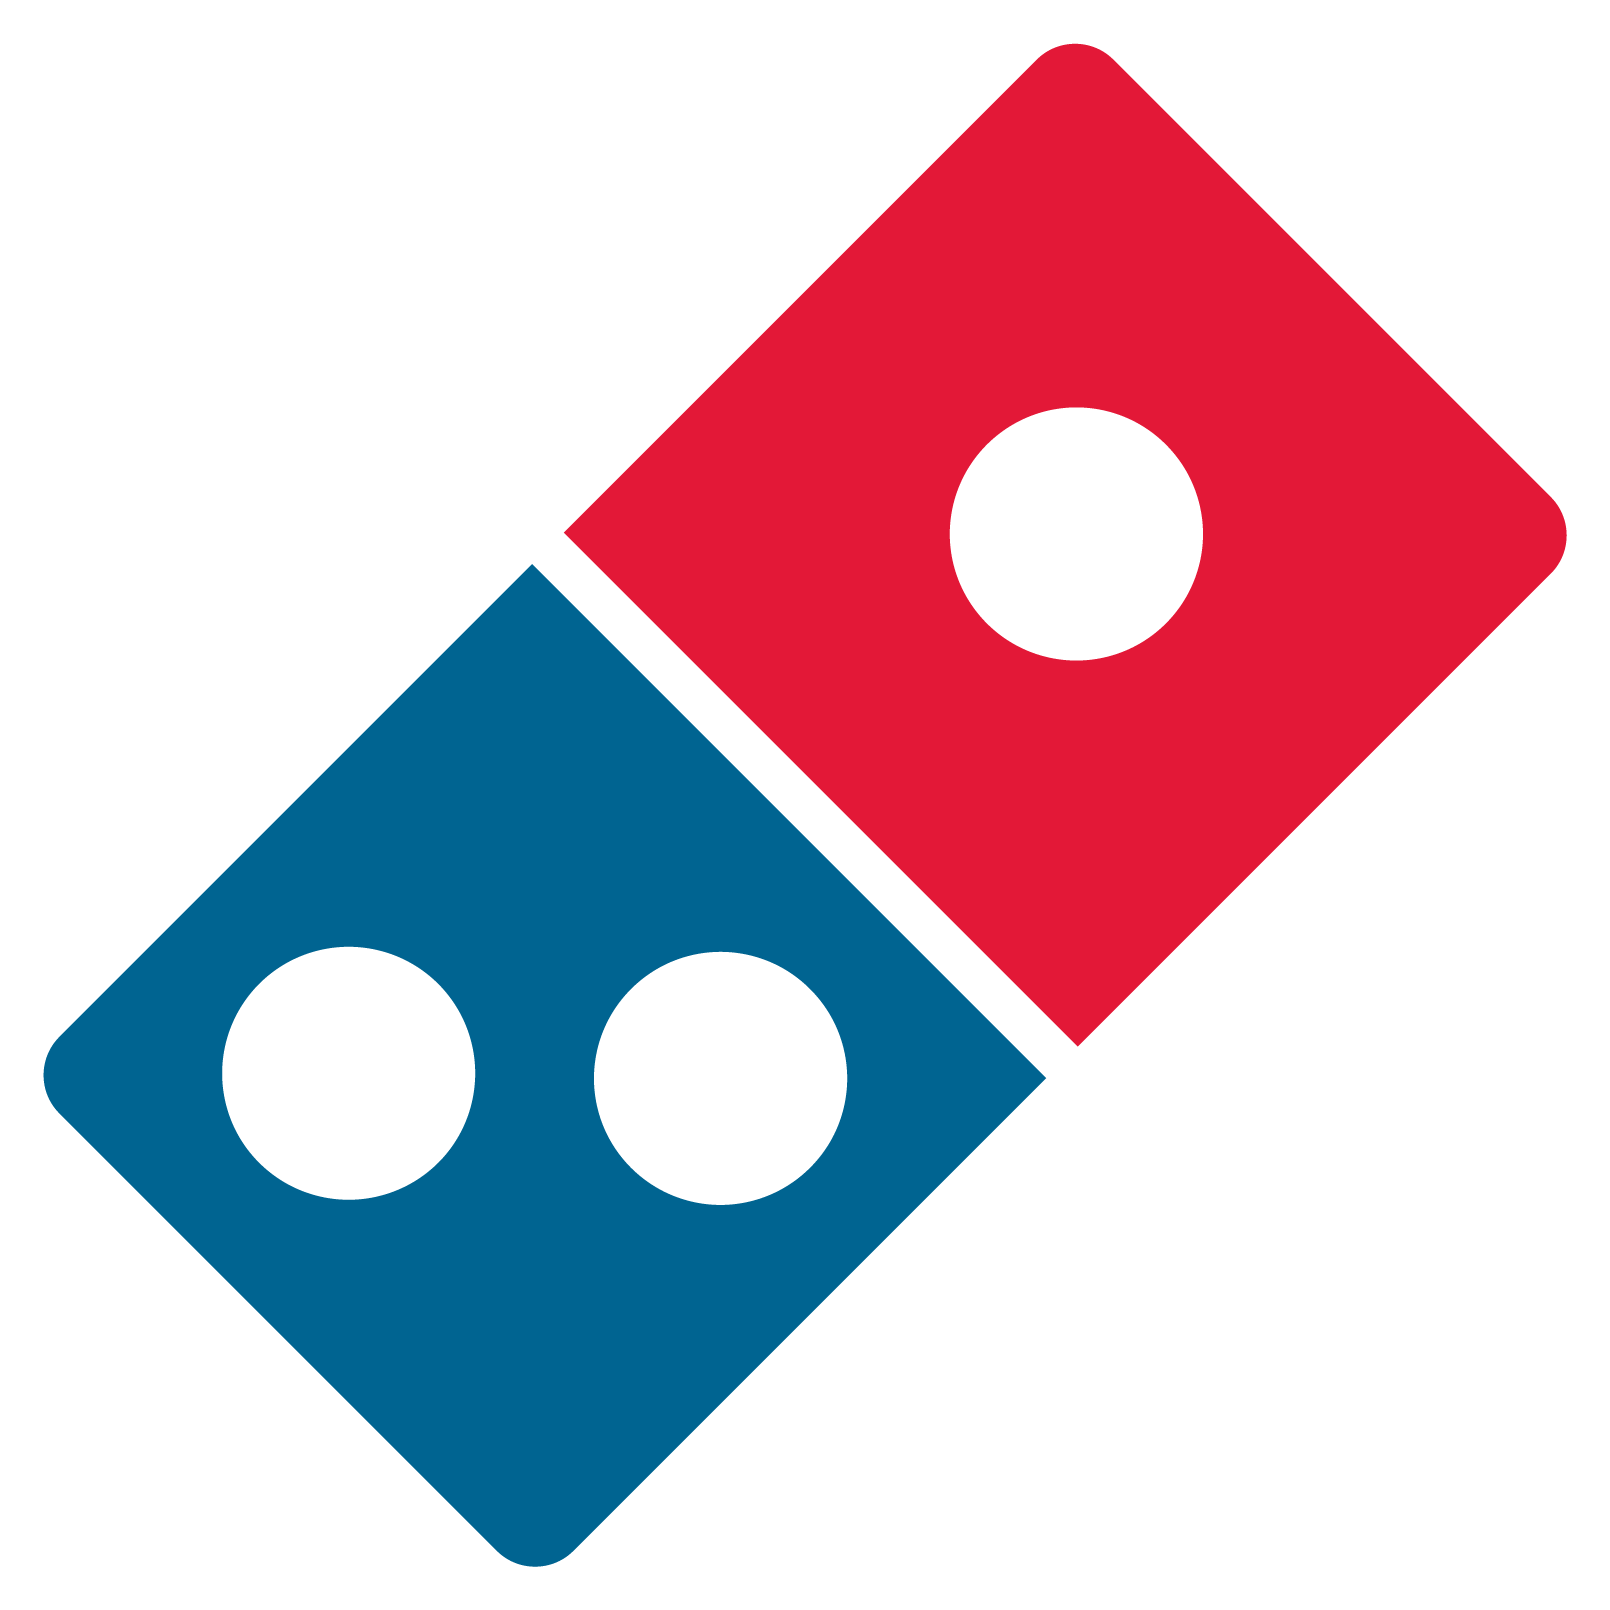 Copy of Copy of Domino's Pizza